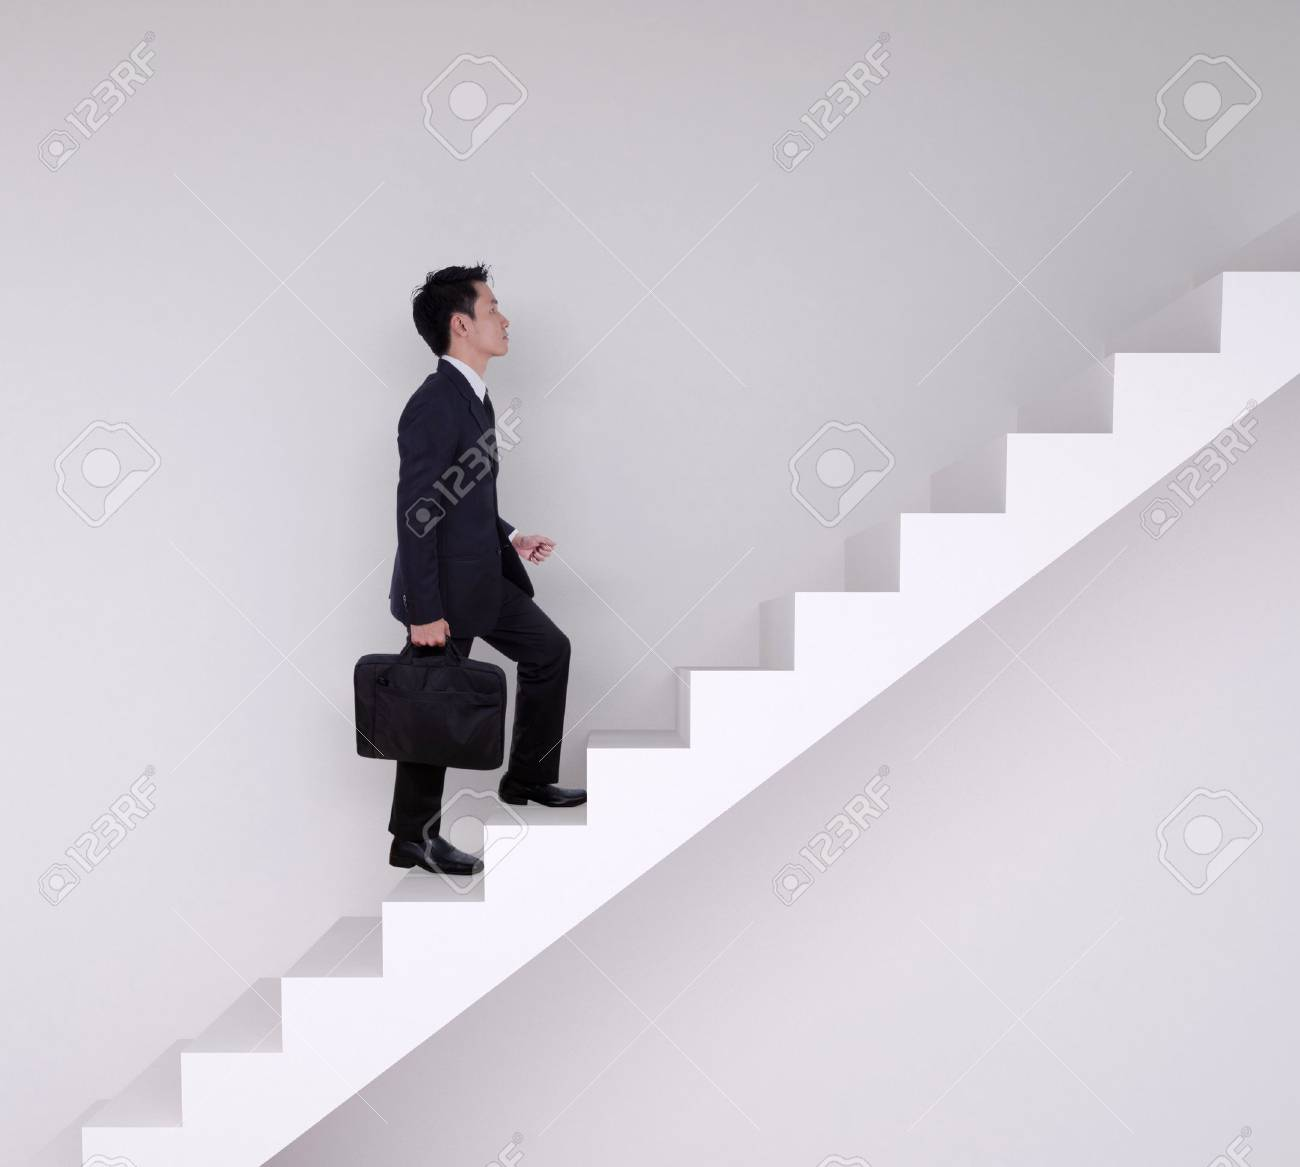 Business man stepping up on stairs with wall background - 52204264